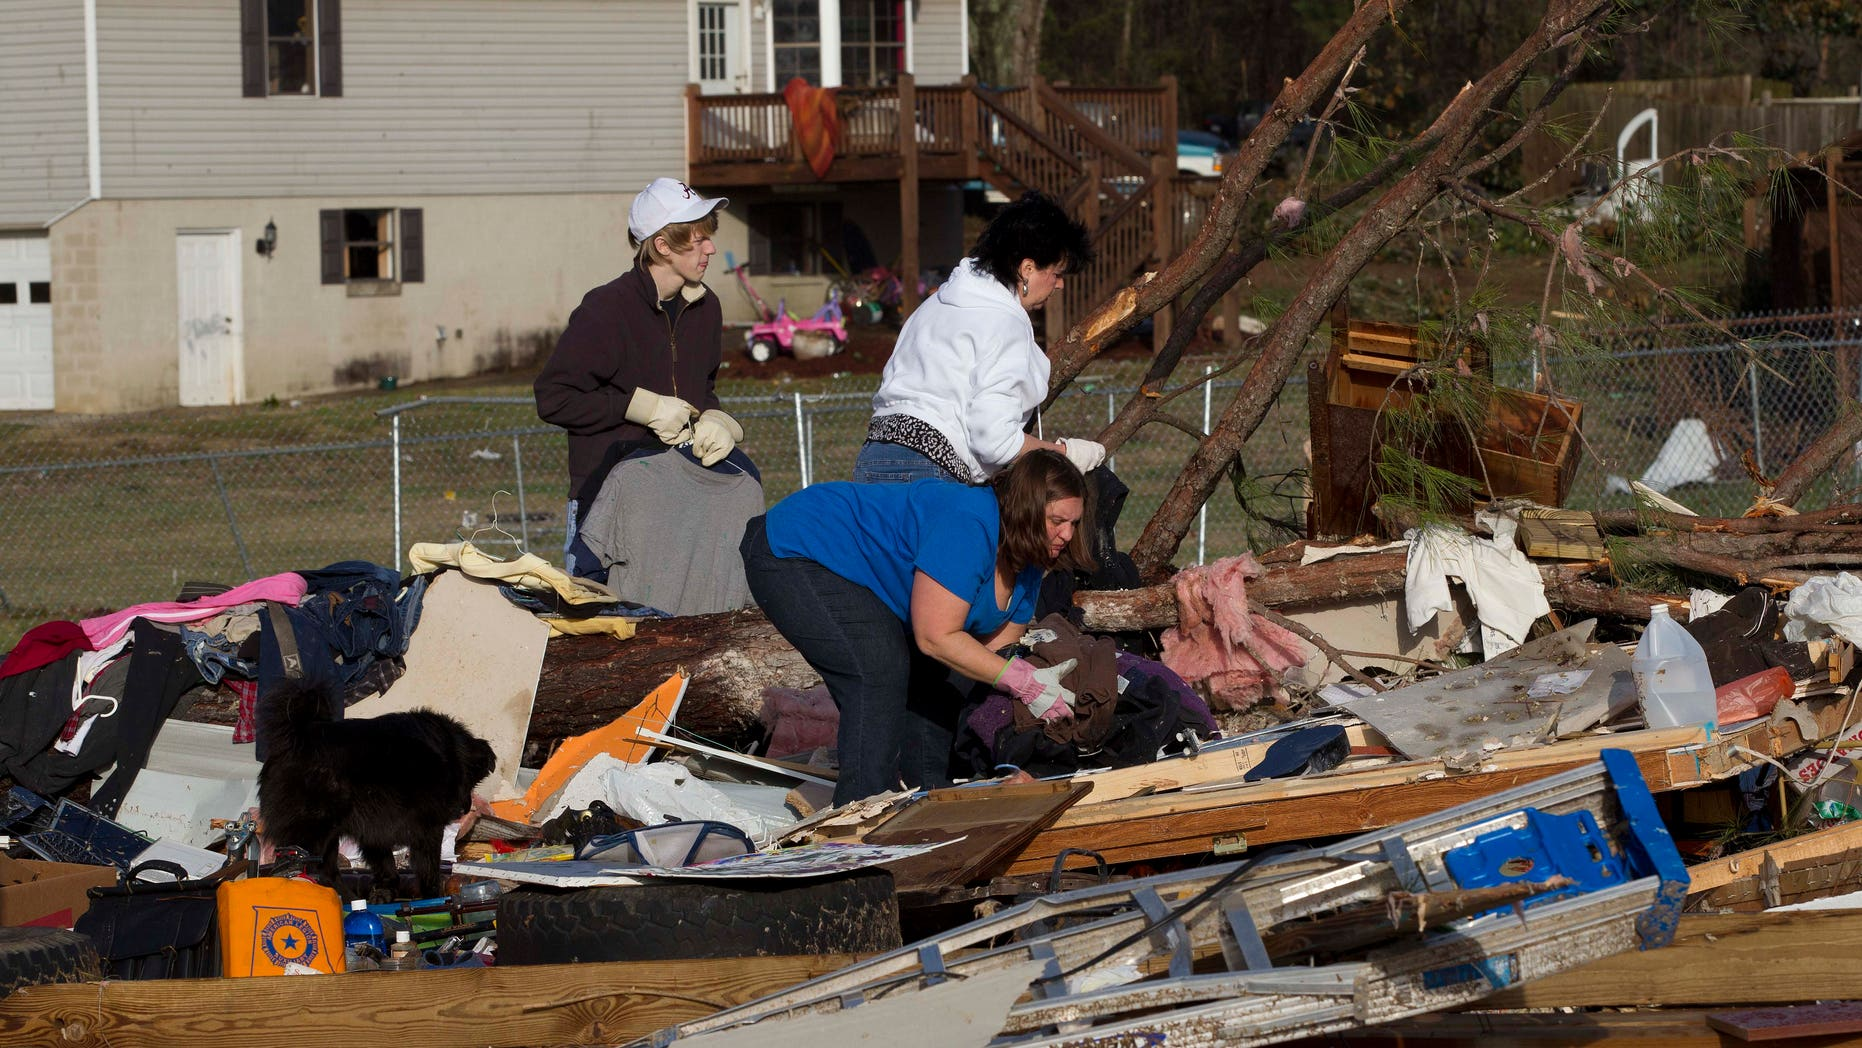 January 23: Neighbors and friends pick through the remains of Russ and Amber Butler's home in Oak Grove, Alabama, after a possible tornado passed through the area.